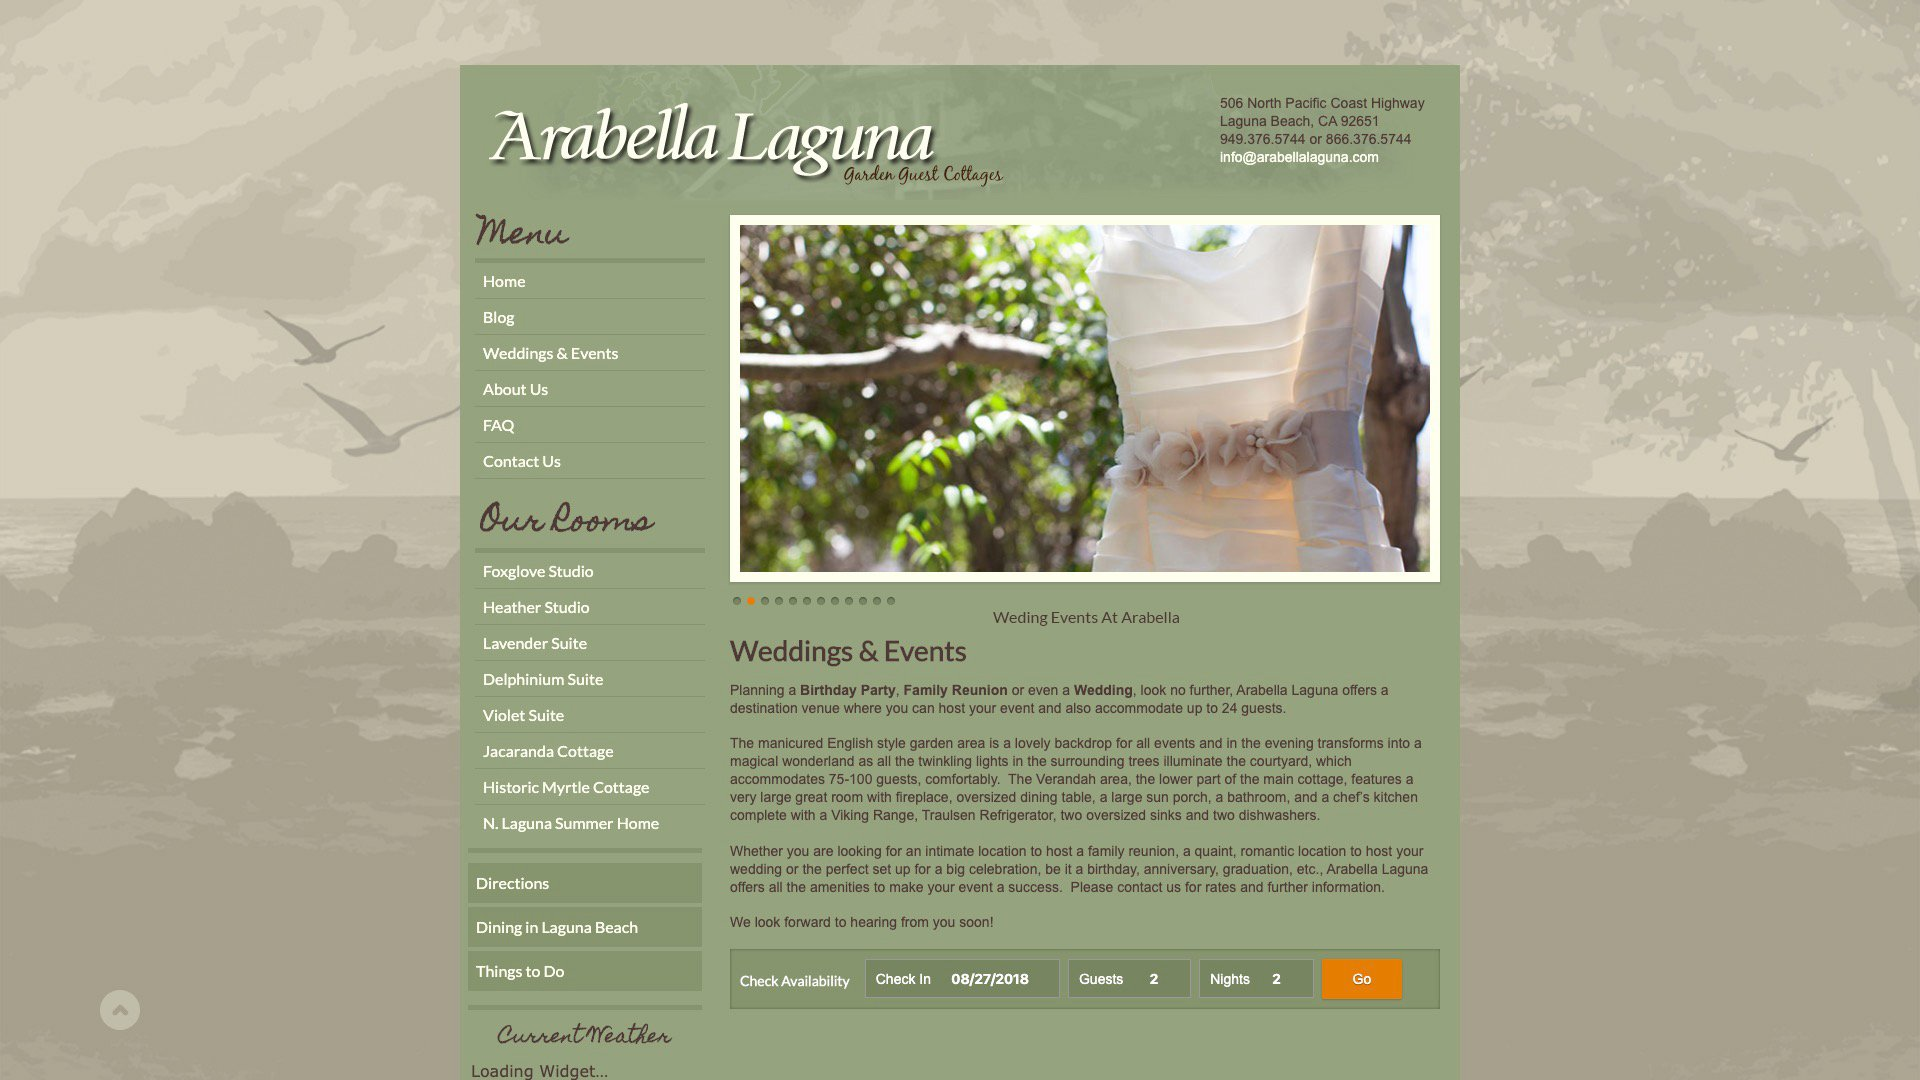 A Photo Of Arabella's Wedding Events Page